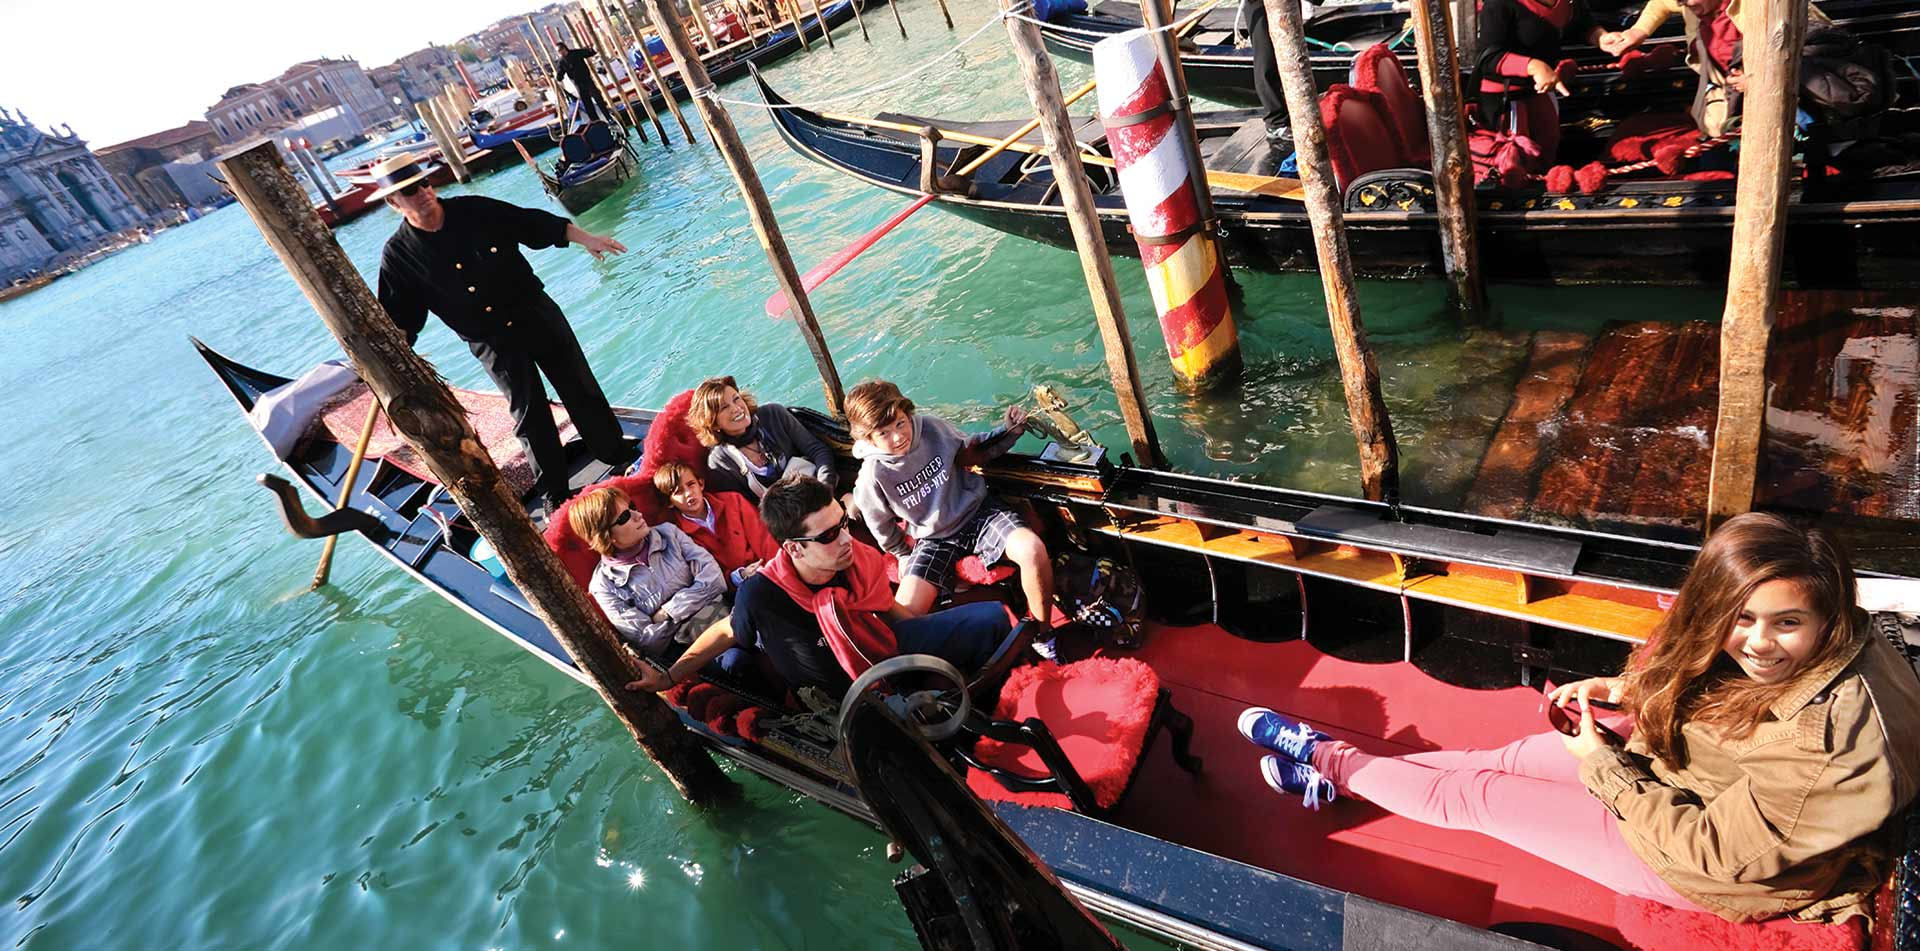 Family on gondola in Venice, Italy